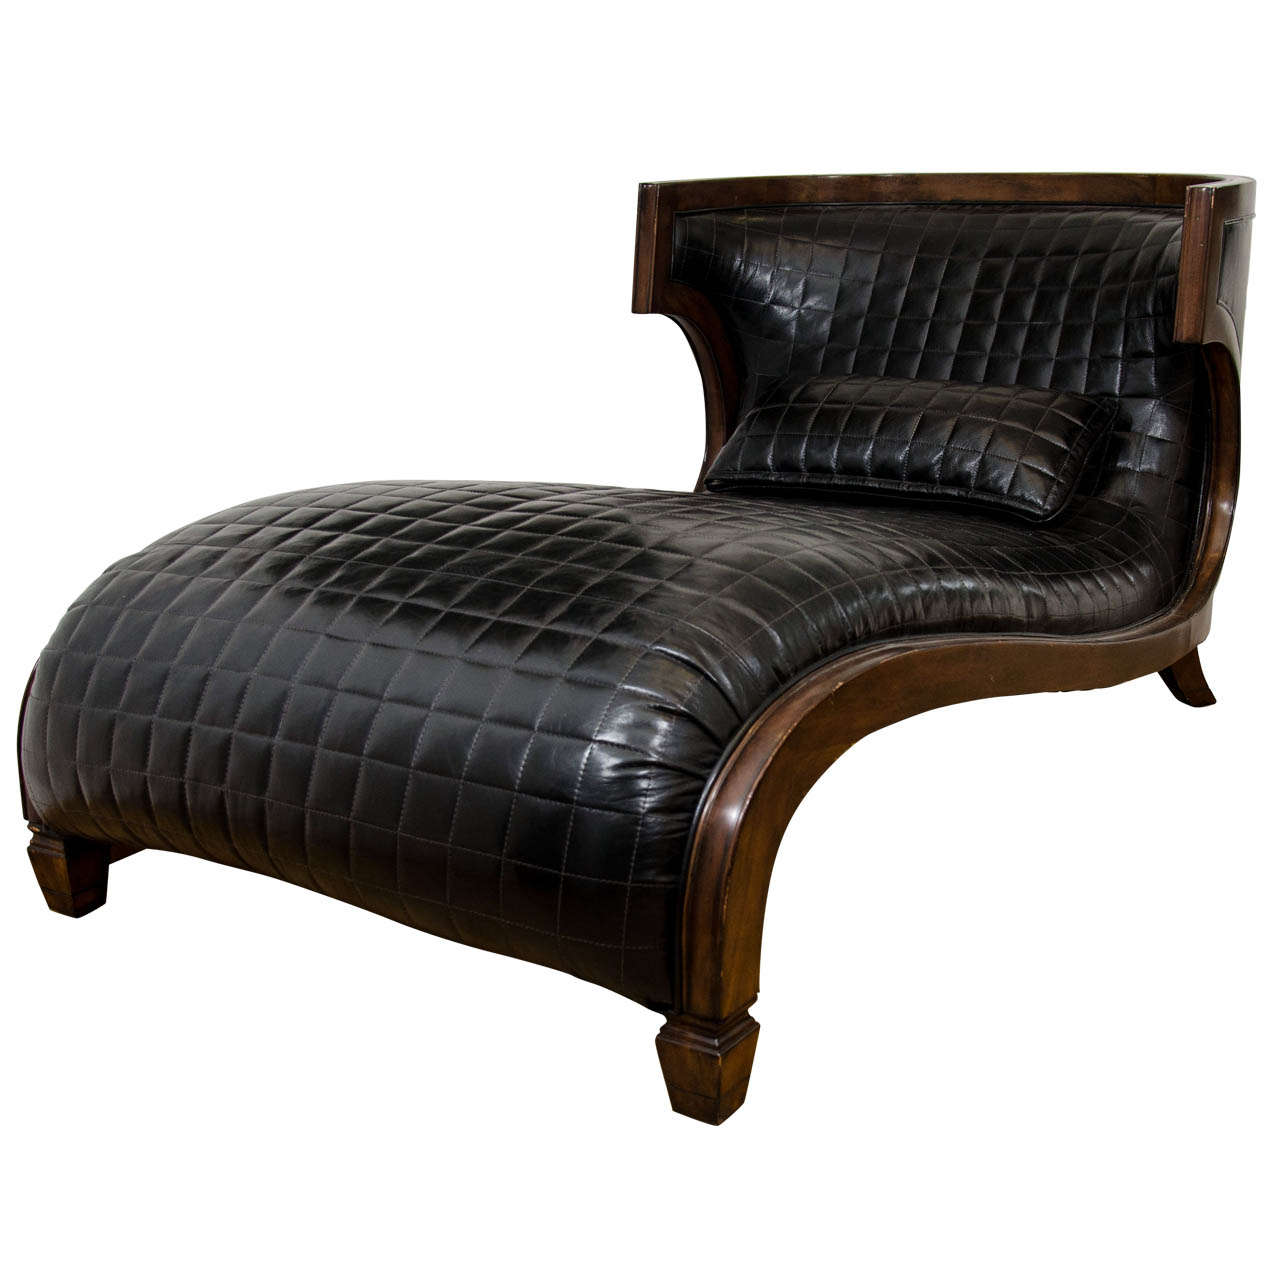 a vintage curvaceous black leather wide chaise longue at 1stdibs. Black Bedroom Furniture Sets. Home Design Ideas